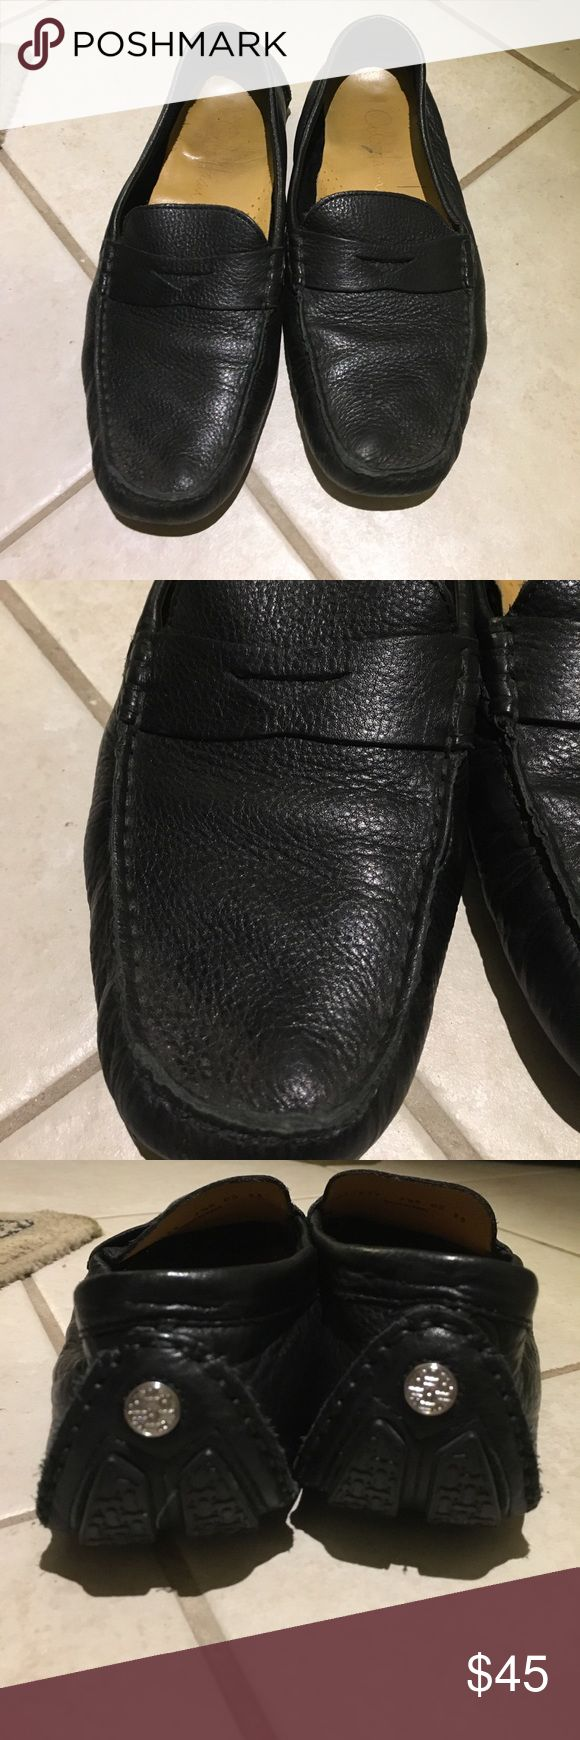 Cole Haan Trilby Driver leather loafers Gently used Cole Haan black leather loafers. Owned for a few years but only worn a handful of times. Cole Haan Shoes Flats & Loafers